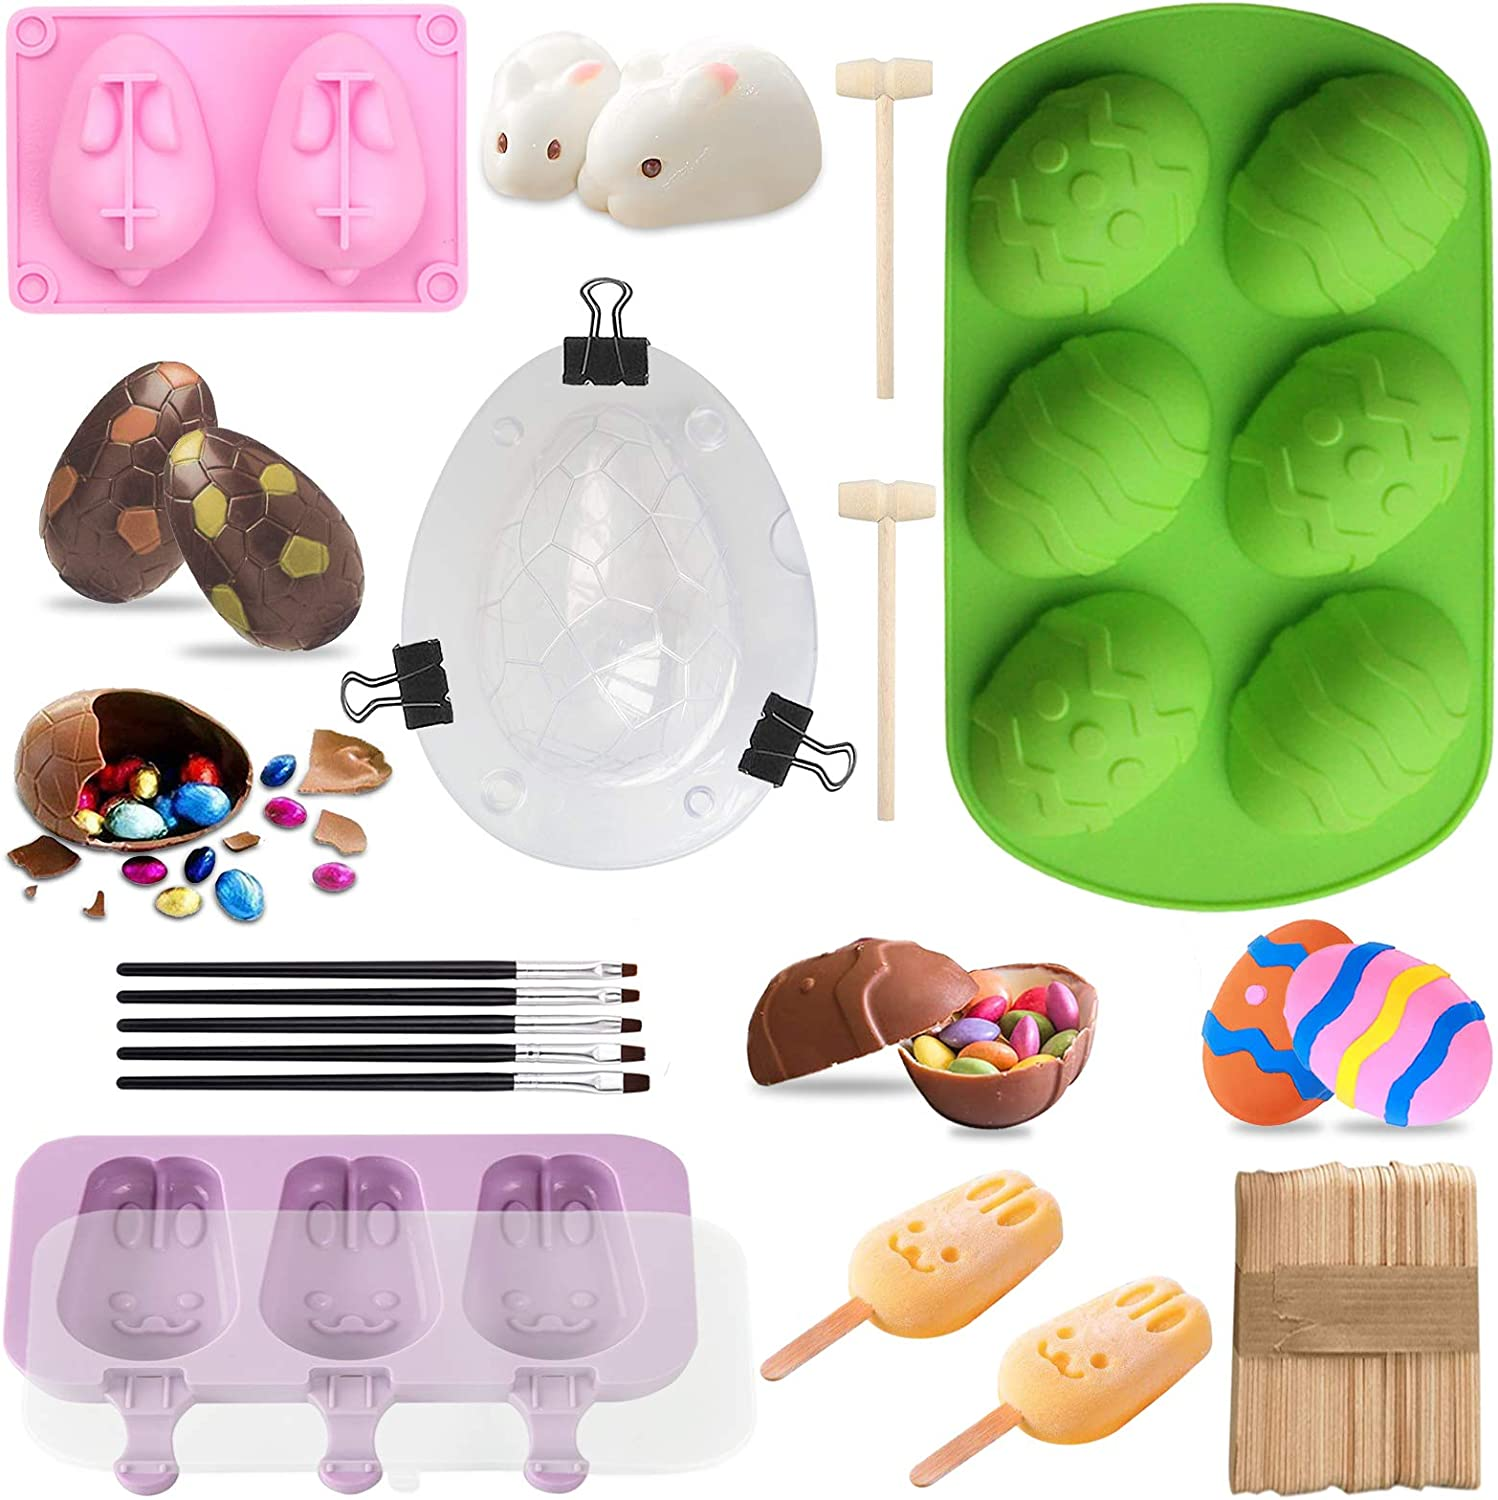 Easter Chocolate Molds-3D Dinosaur Egg Mold,Easter Egg Mold,Bunny Molds,Popsicle Silicone Molds with 50 Wooden Sticks,2 Mini Wooden Hammer 5 Cake Brushes for DIY Chocolate Bomb,Candy